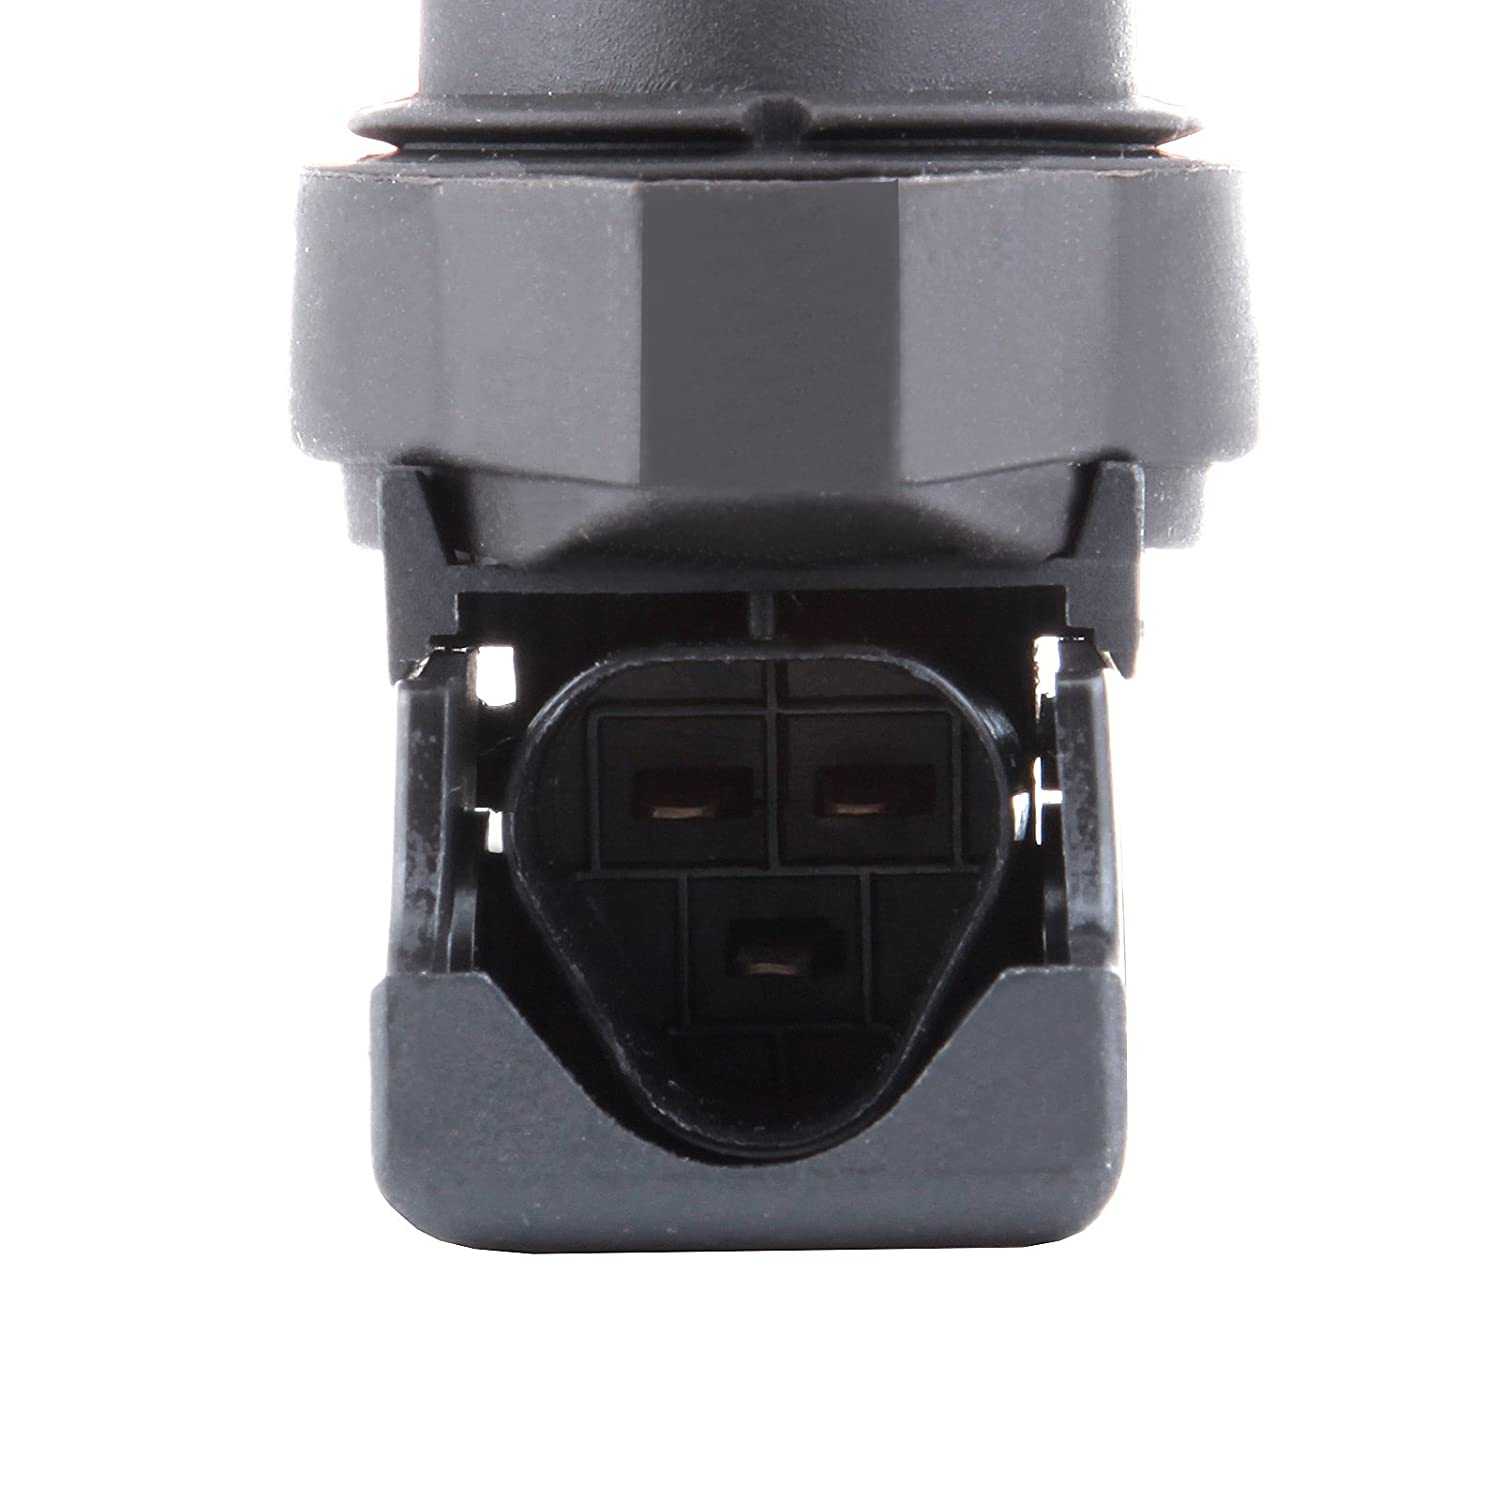 SCITOO Ignition Coils Compatible with UF592 Fit for BMW 128i 328i 535i 550i 750i X5 X6 Z4 Mini Cooper 2007-2013 Please Refer to The Product Description for Details